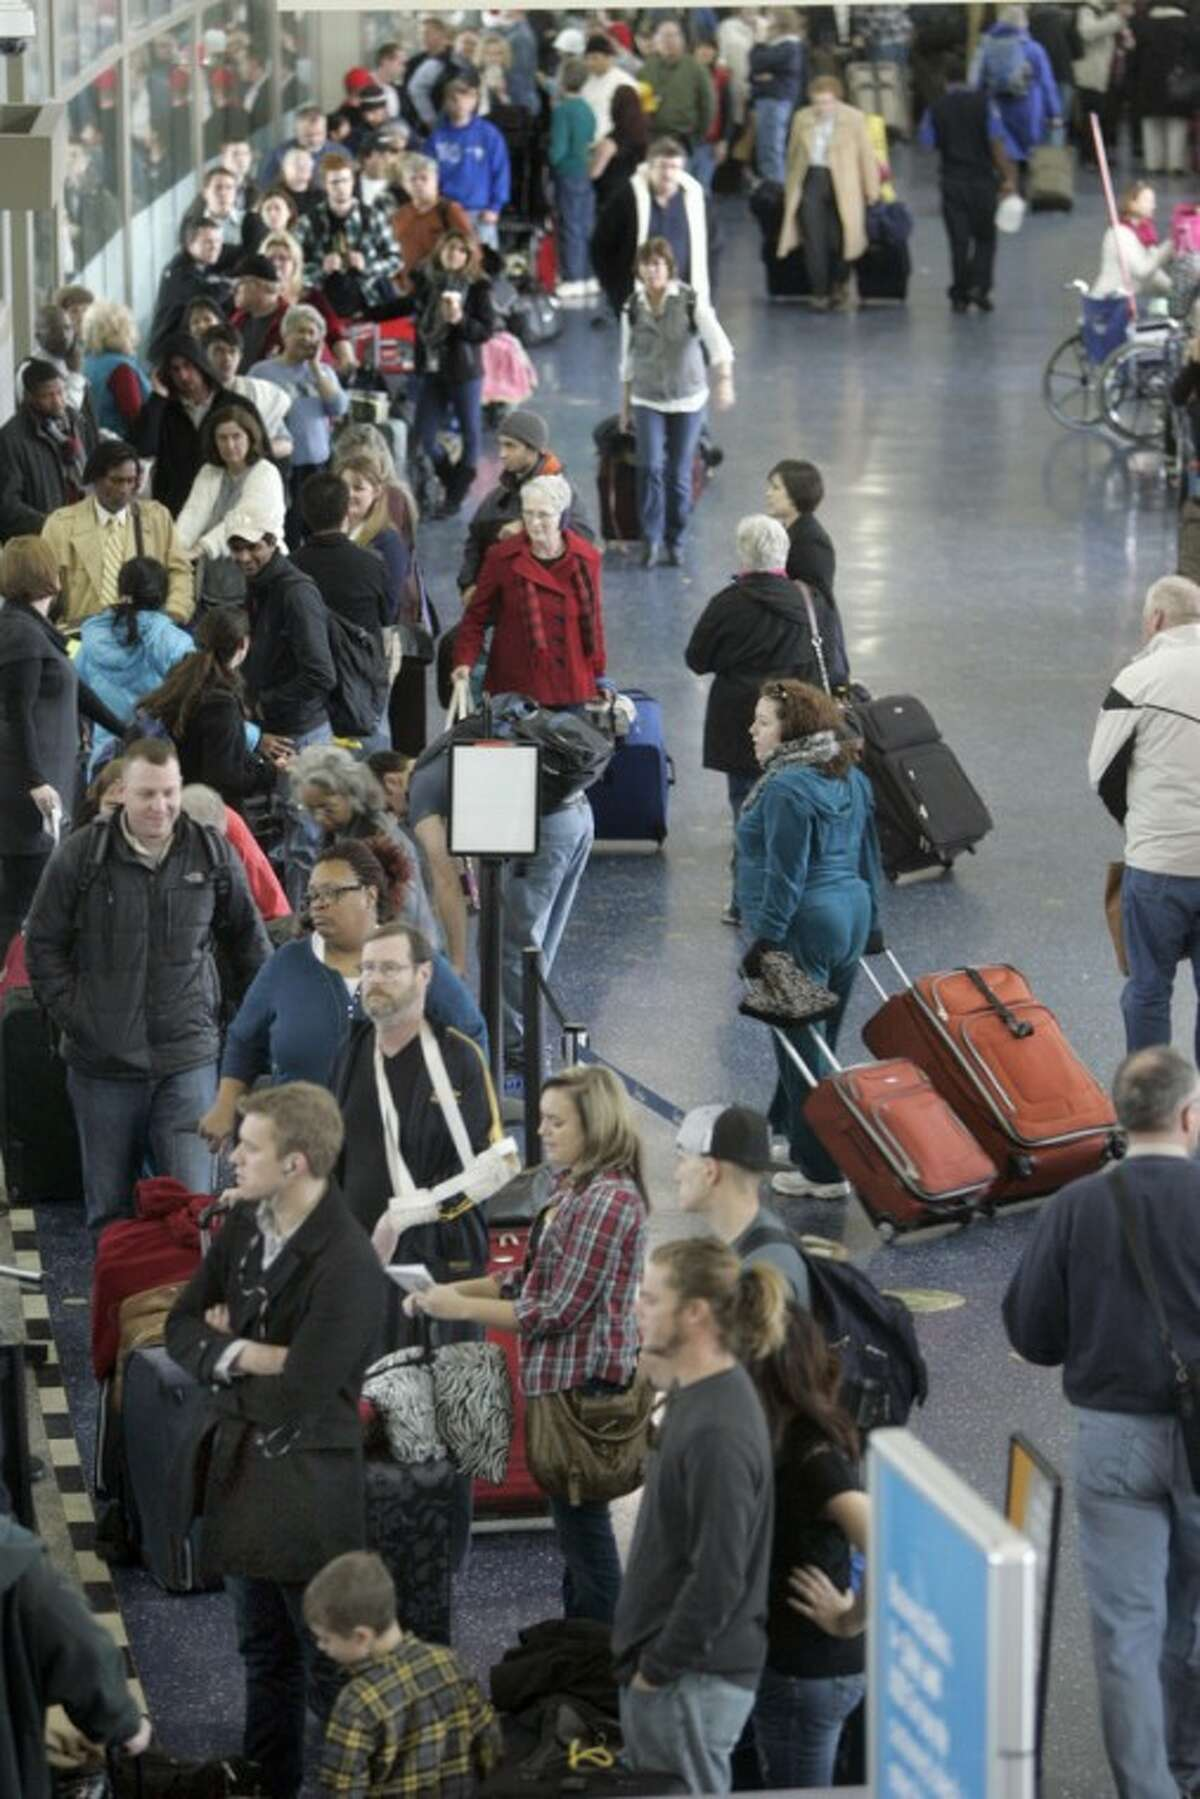 Travelers wait in line at the Southwest Airlines ticket counter at Kansas City International Airport on Thursday, Dec. 20 2012, in Kansas City, Mo. Many flights were canceled due to inclement weather. (AP Photo/The Kansas City Star, David Pulliam)